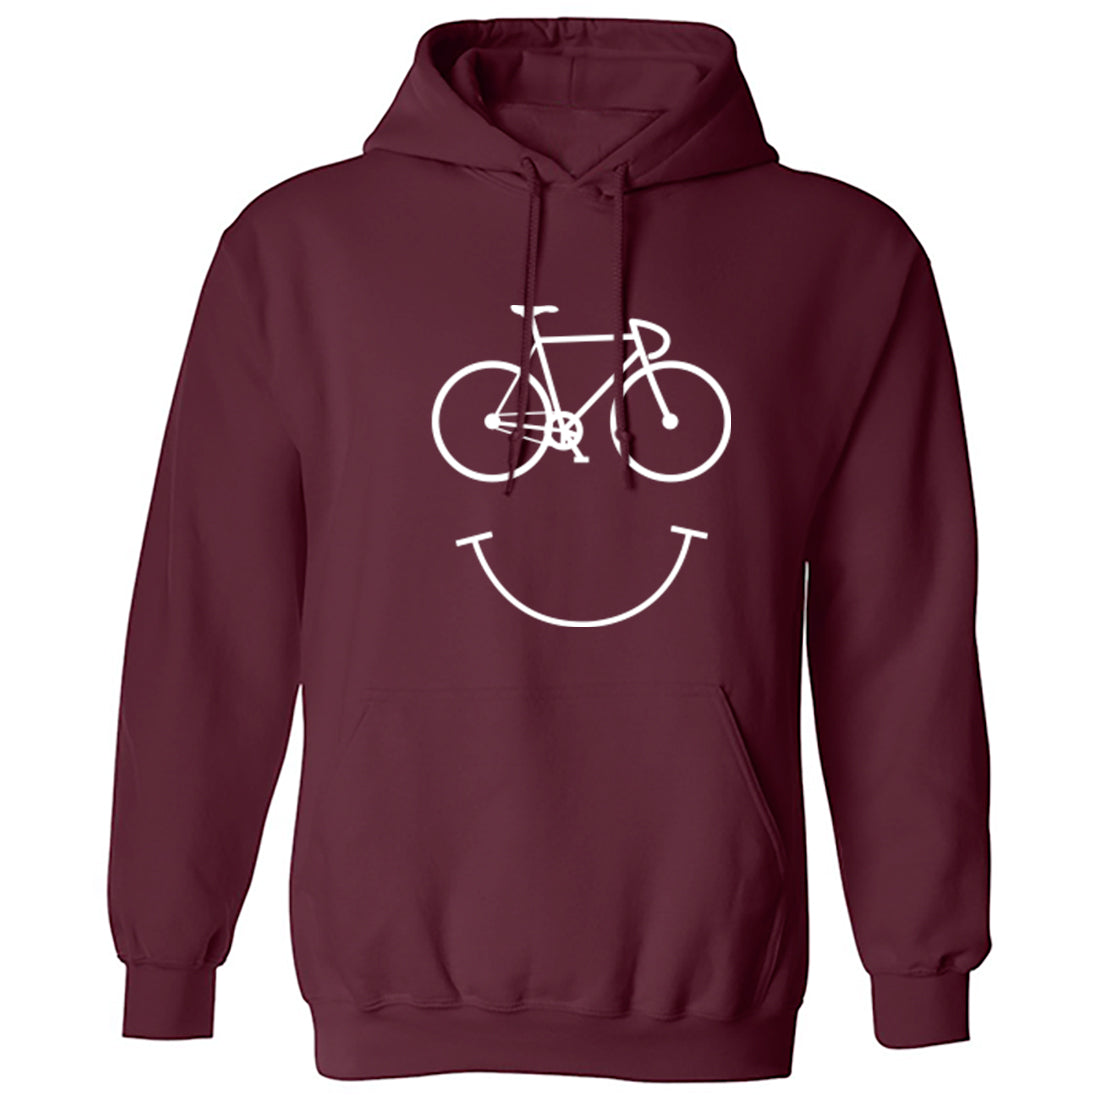 Cycle Smile Unisex Hoodie K0995 - Illustrated Identity Ltd.